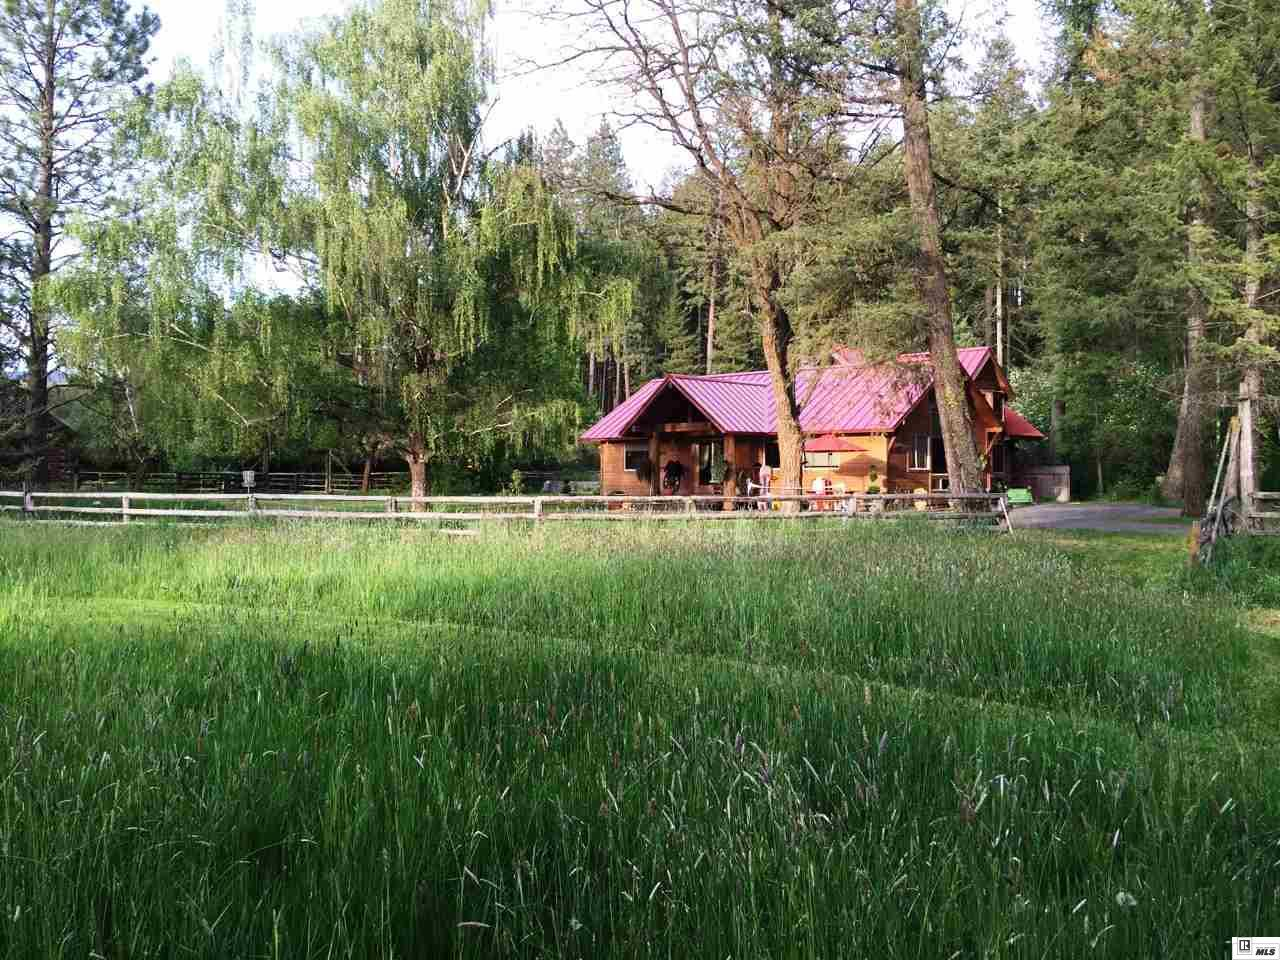 Real Estate for Sale, ListingId: 36410156, Moscow,ID83843